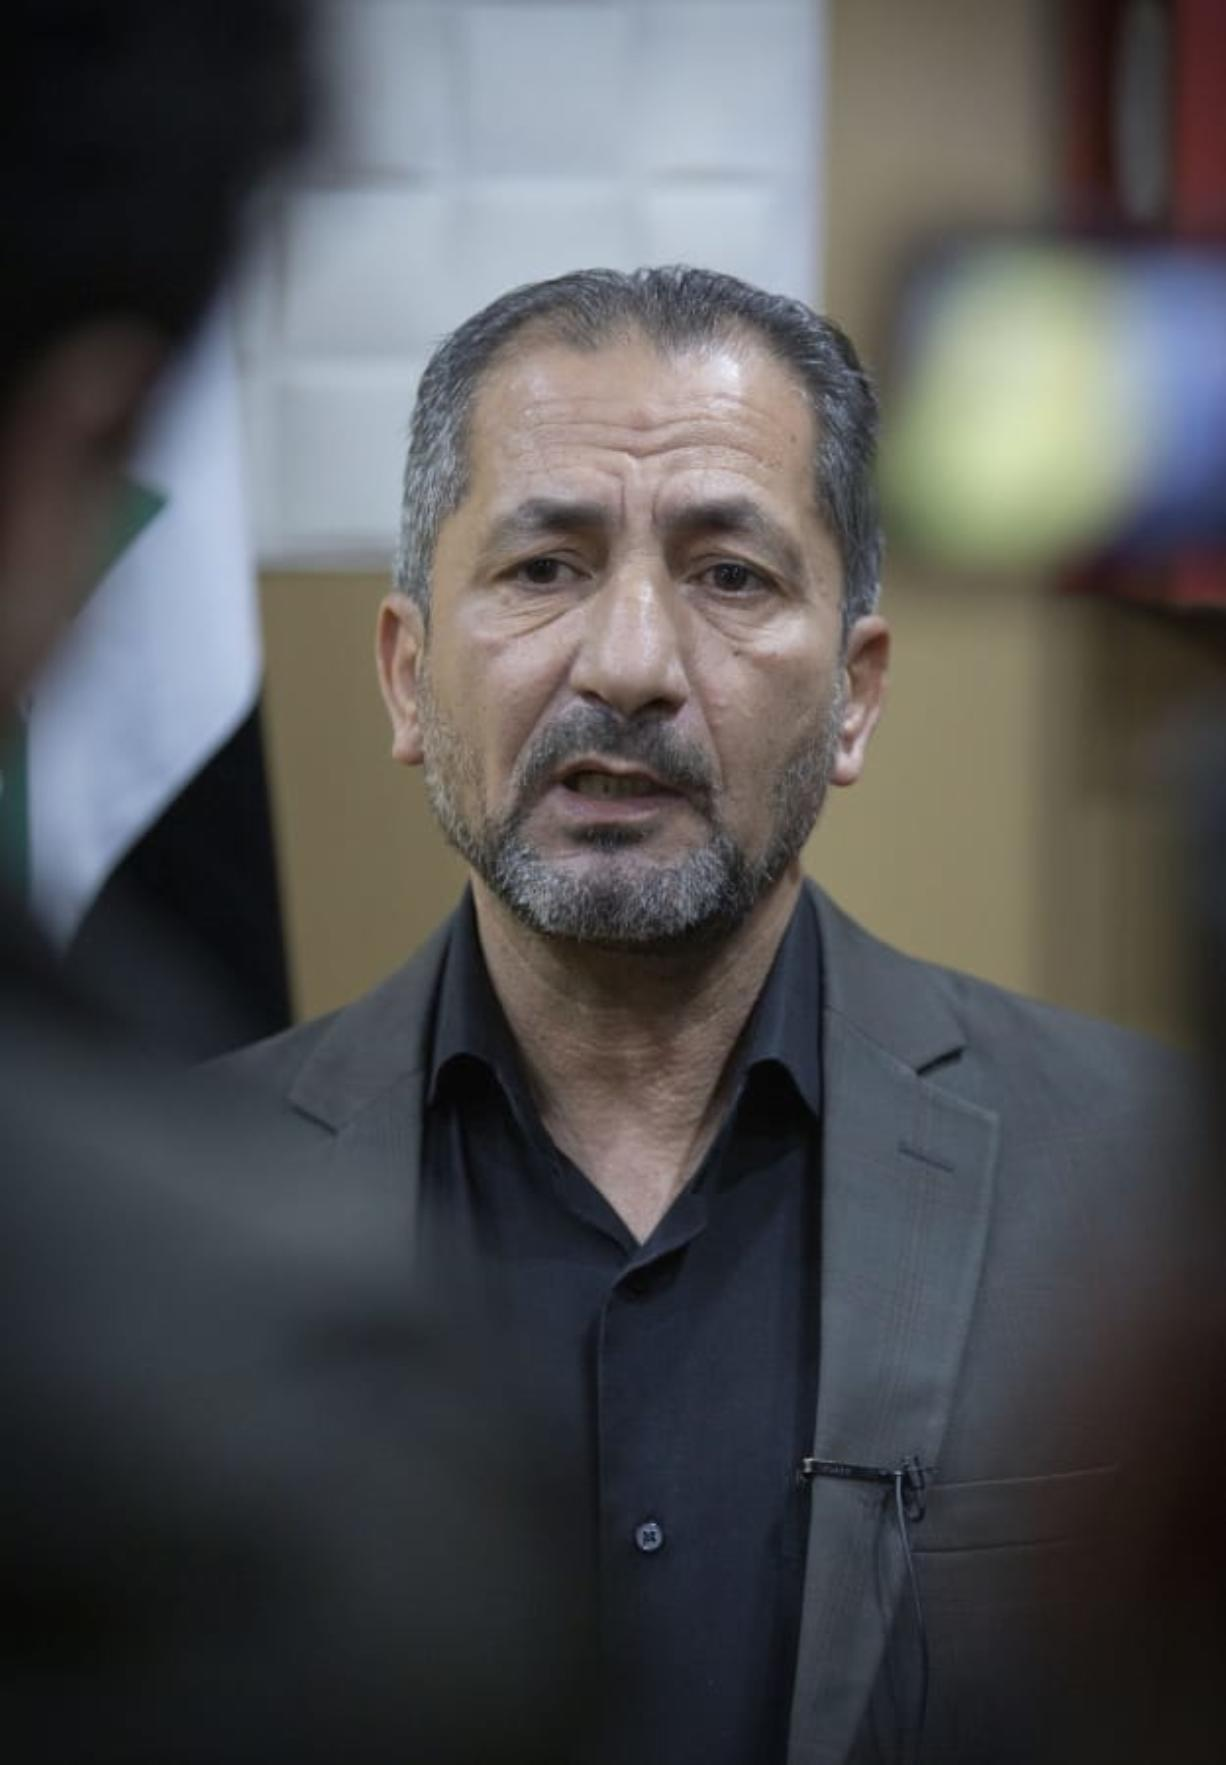 """Mohammed Mohieh, the spokesman of Iraq's Iranian-backed Kataeb Hezbollah, or Hezbollah Brigades, gives an interview at his office, in Baghdad, Iraq, Monday, Dec. 30, 2019. Mohieh said Monday that the death toll from U.S. military strikes in Iraq and Syria against its fighters has risen to 25, vowing to exact revenge for the """"aggression of evil American ravens."""" (AP Photo/Nasser Nasser)"""